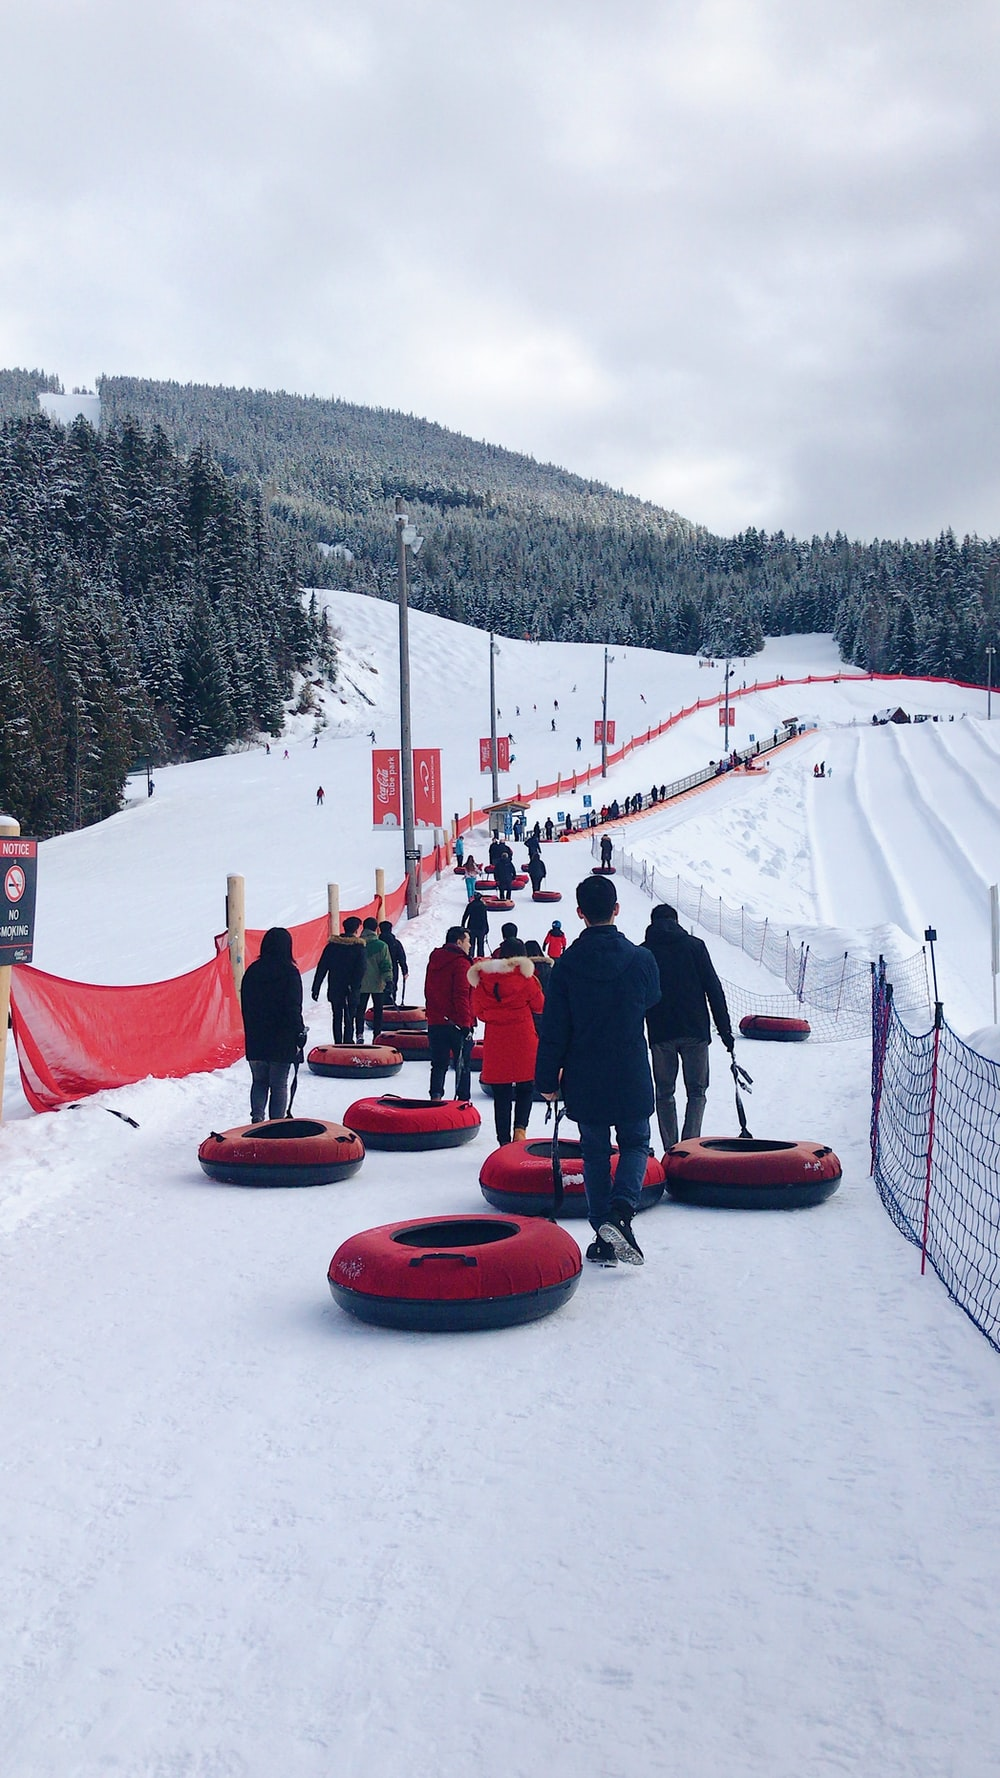 people sitting on red sled on snow covered ground during daytime